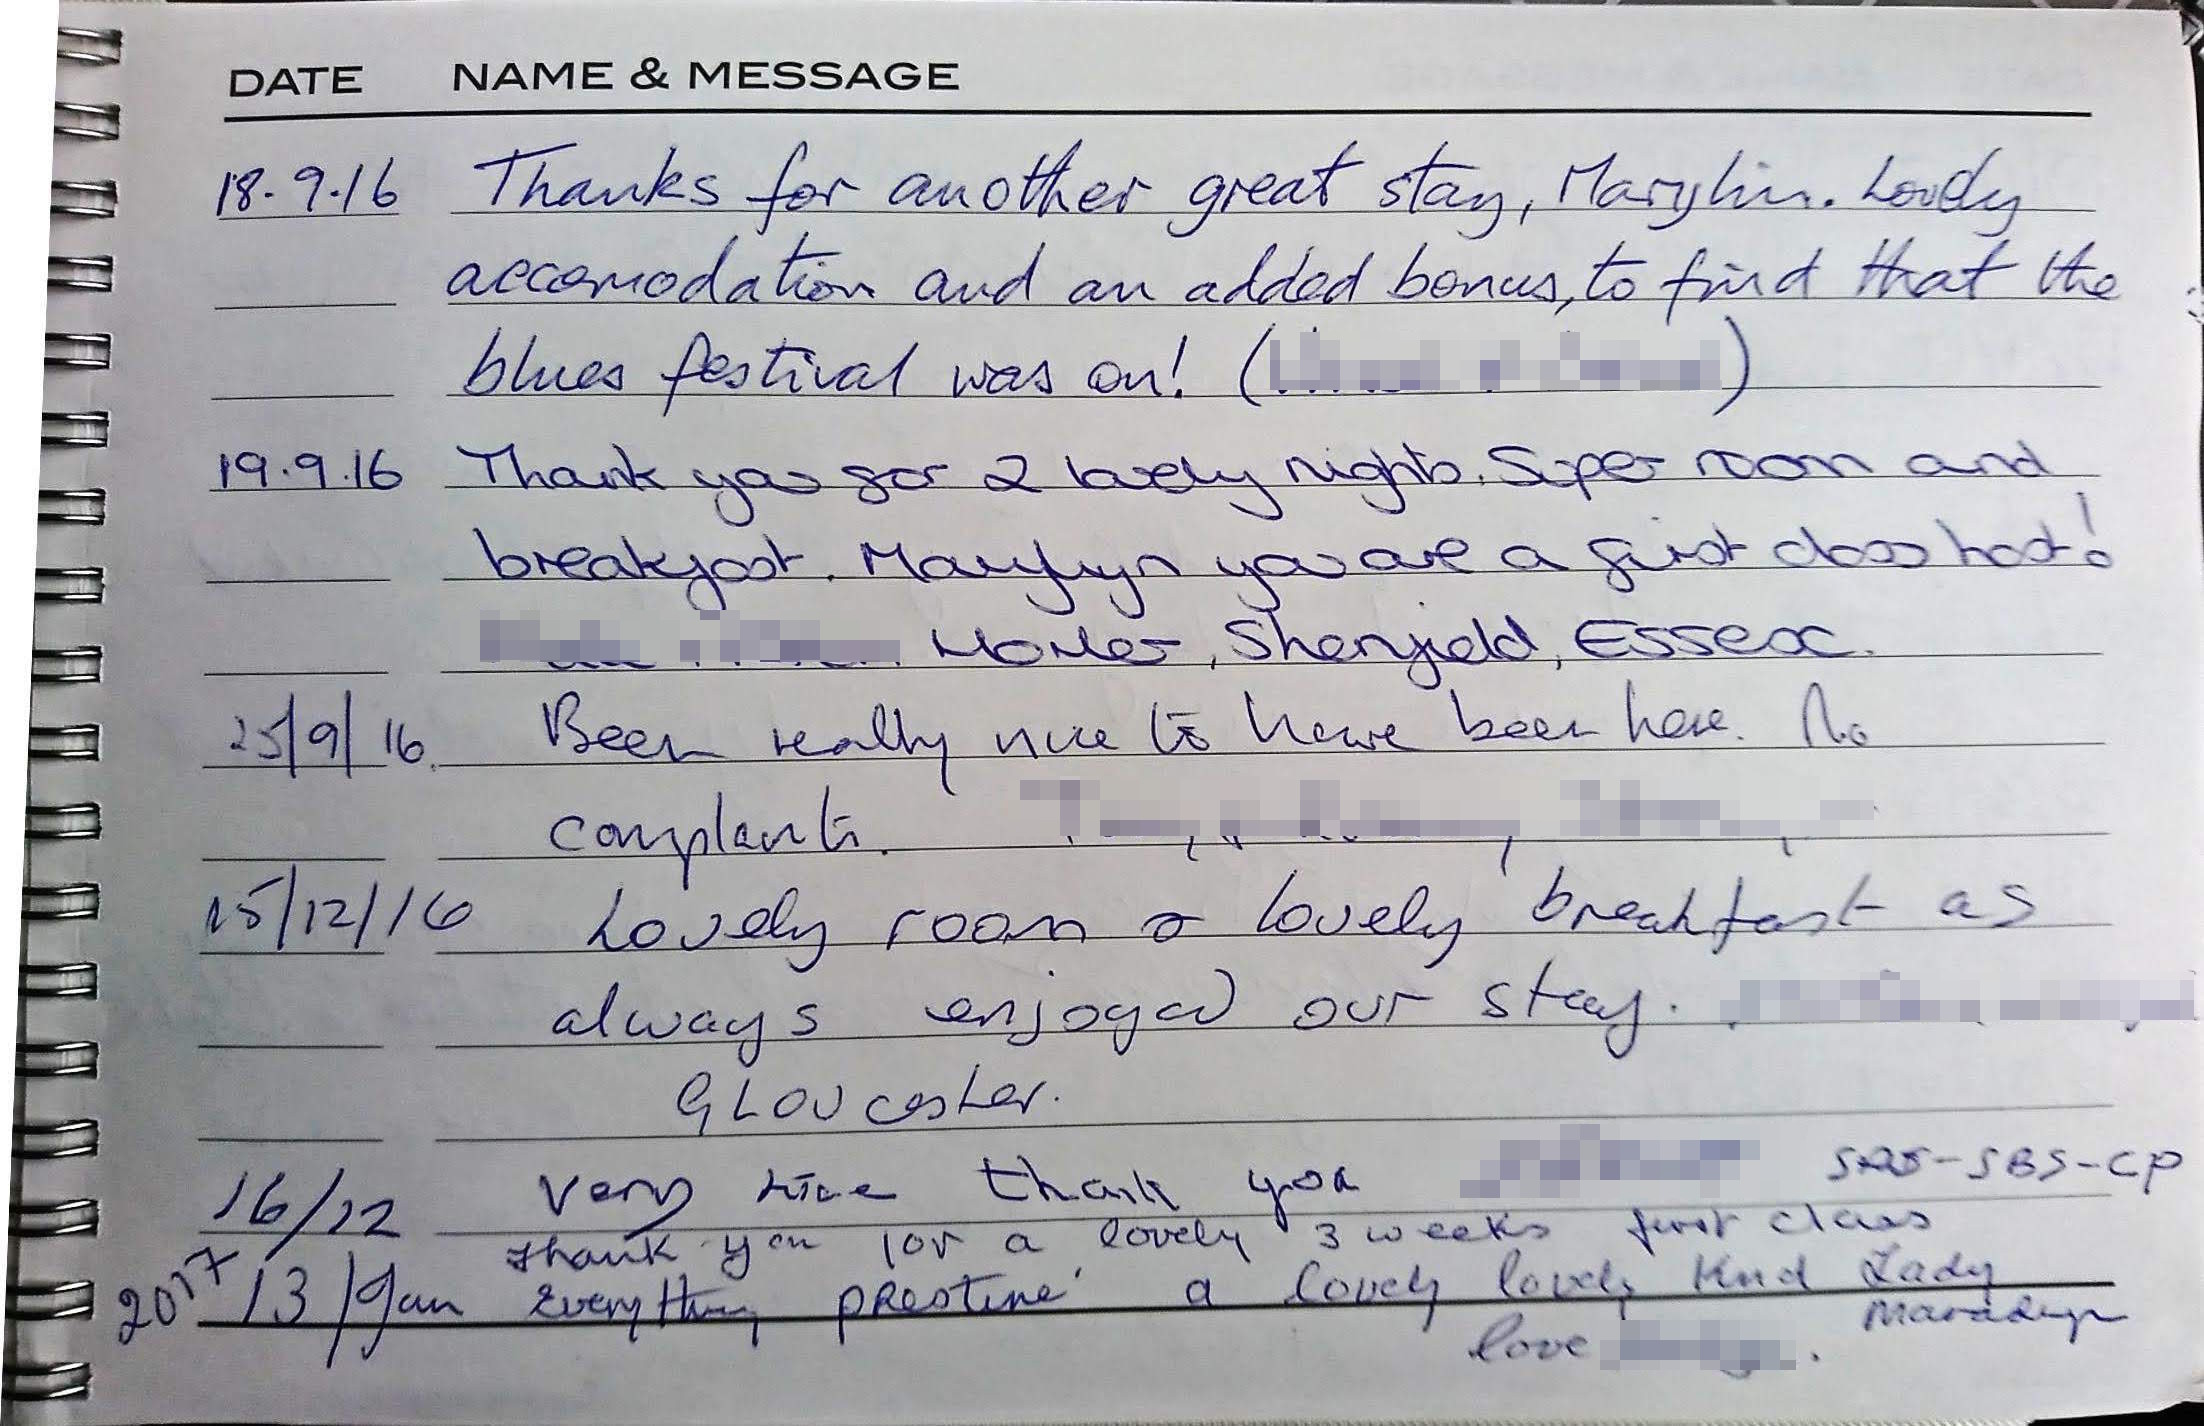 Poole guest house reviews of The Old Townhouse